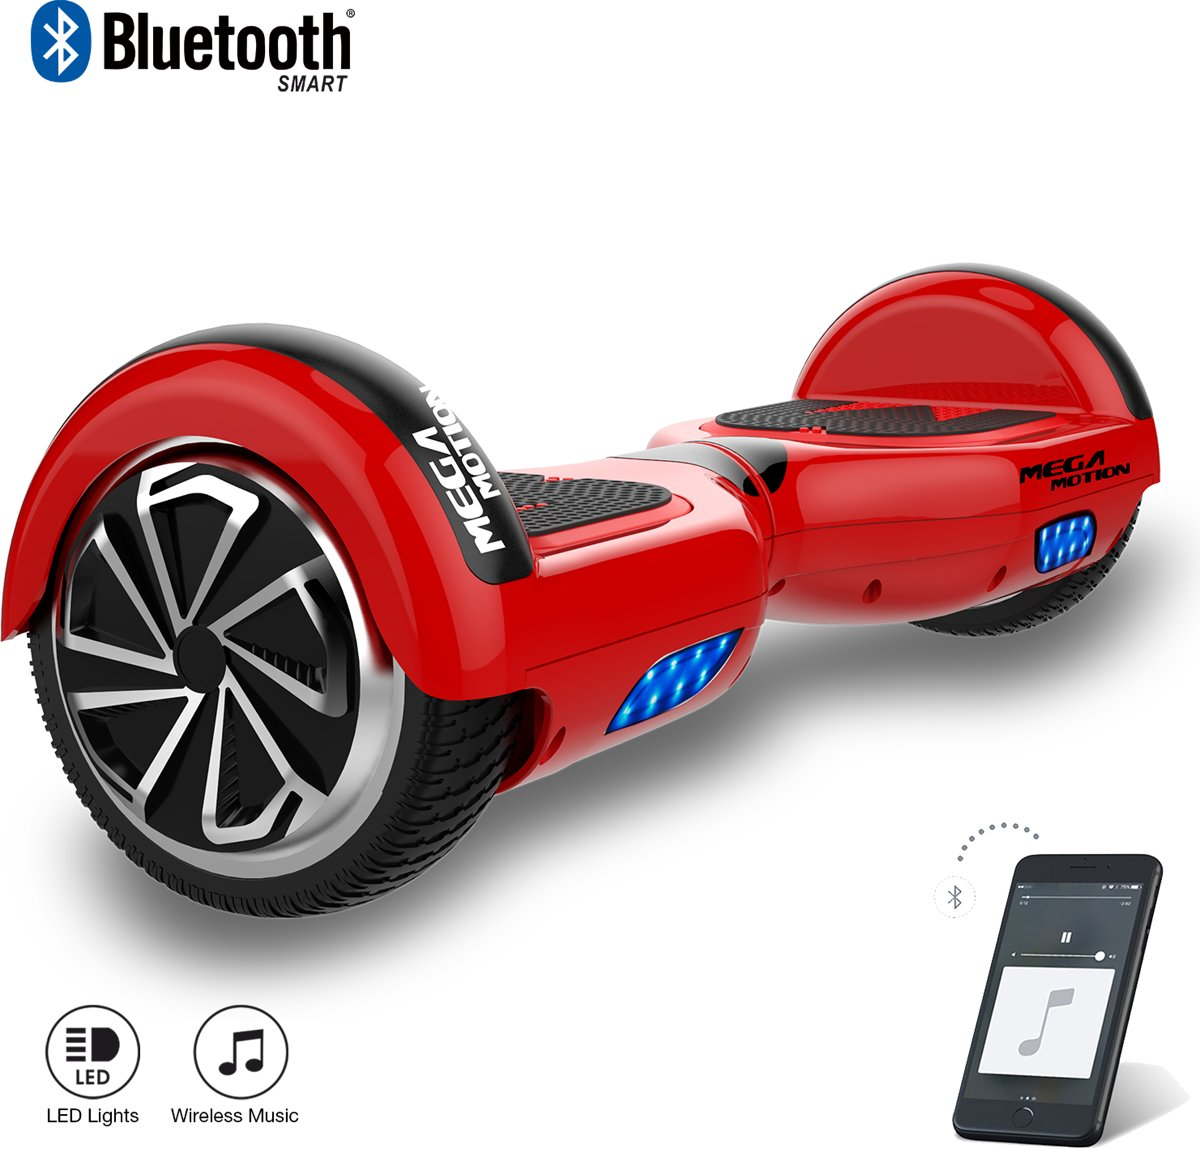 Hoverboard / Elektrische Scooter Zelfbalansering / Oxboard / LED Verlichting + Bluetooth , 6.5-inch ,Rood